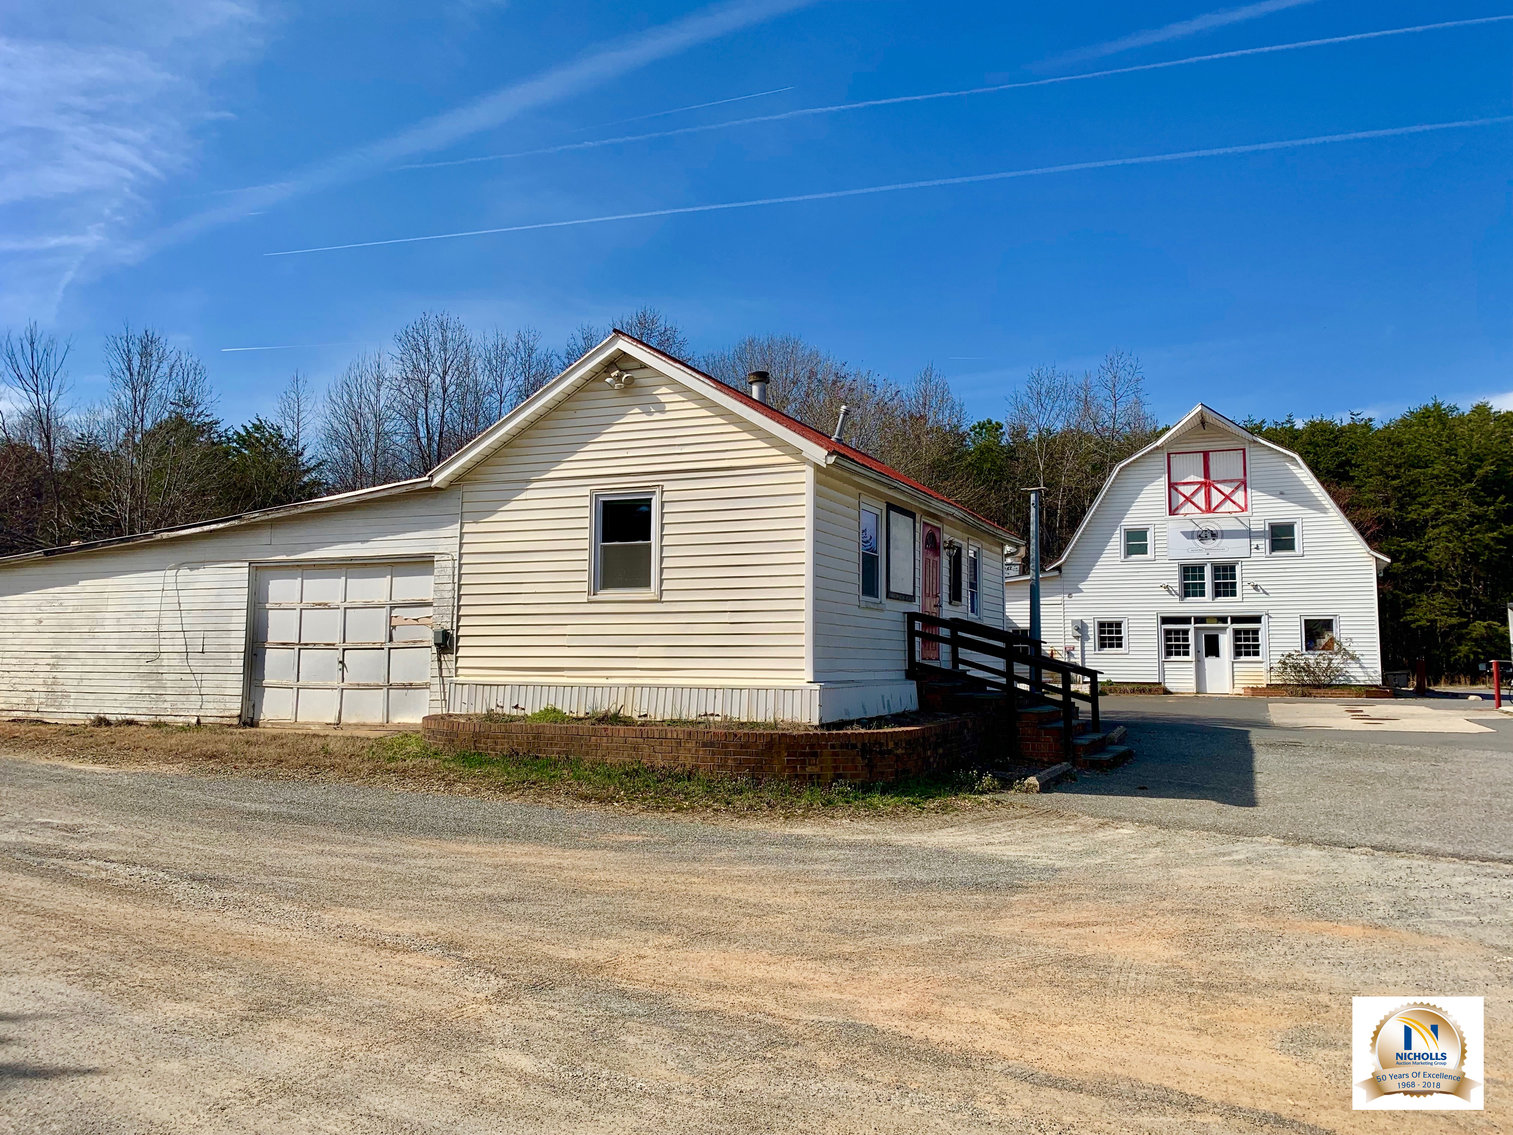 Image for Commercial Building w/Detached Office on 1.48 Acres Near Lake Anna--Spotsylvania County, VA